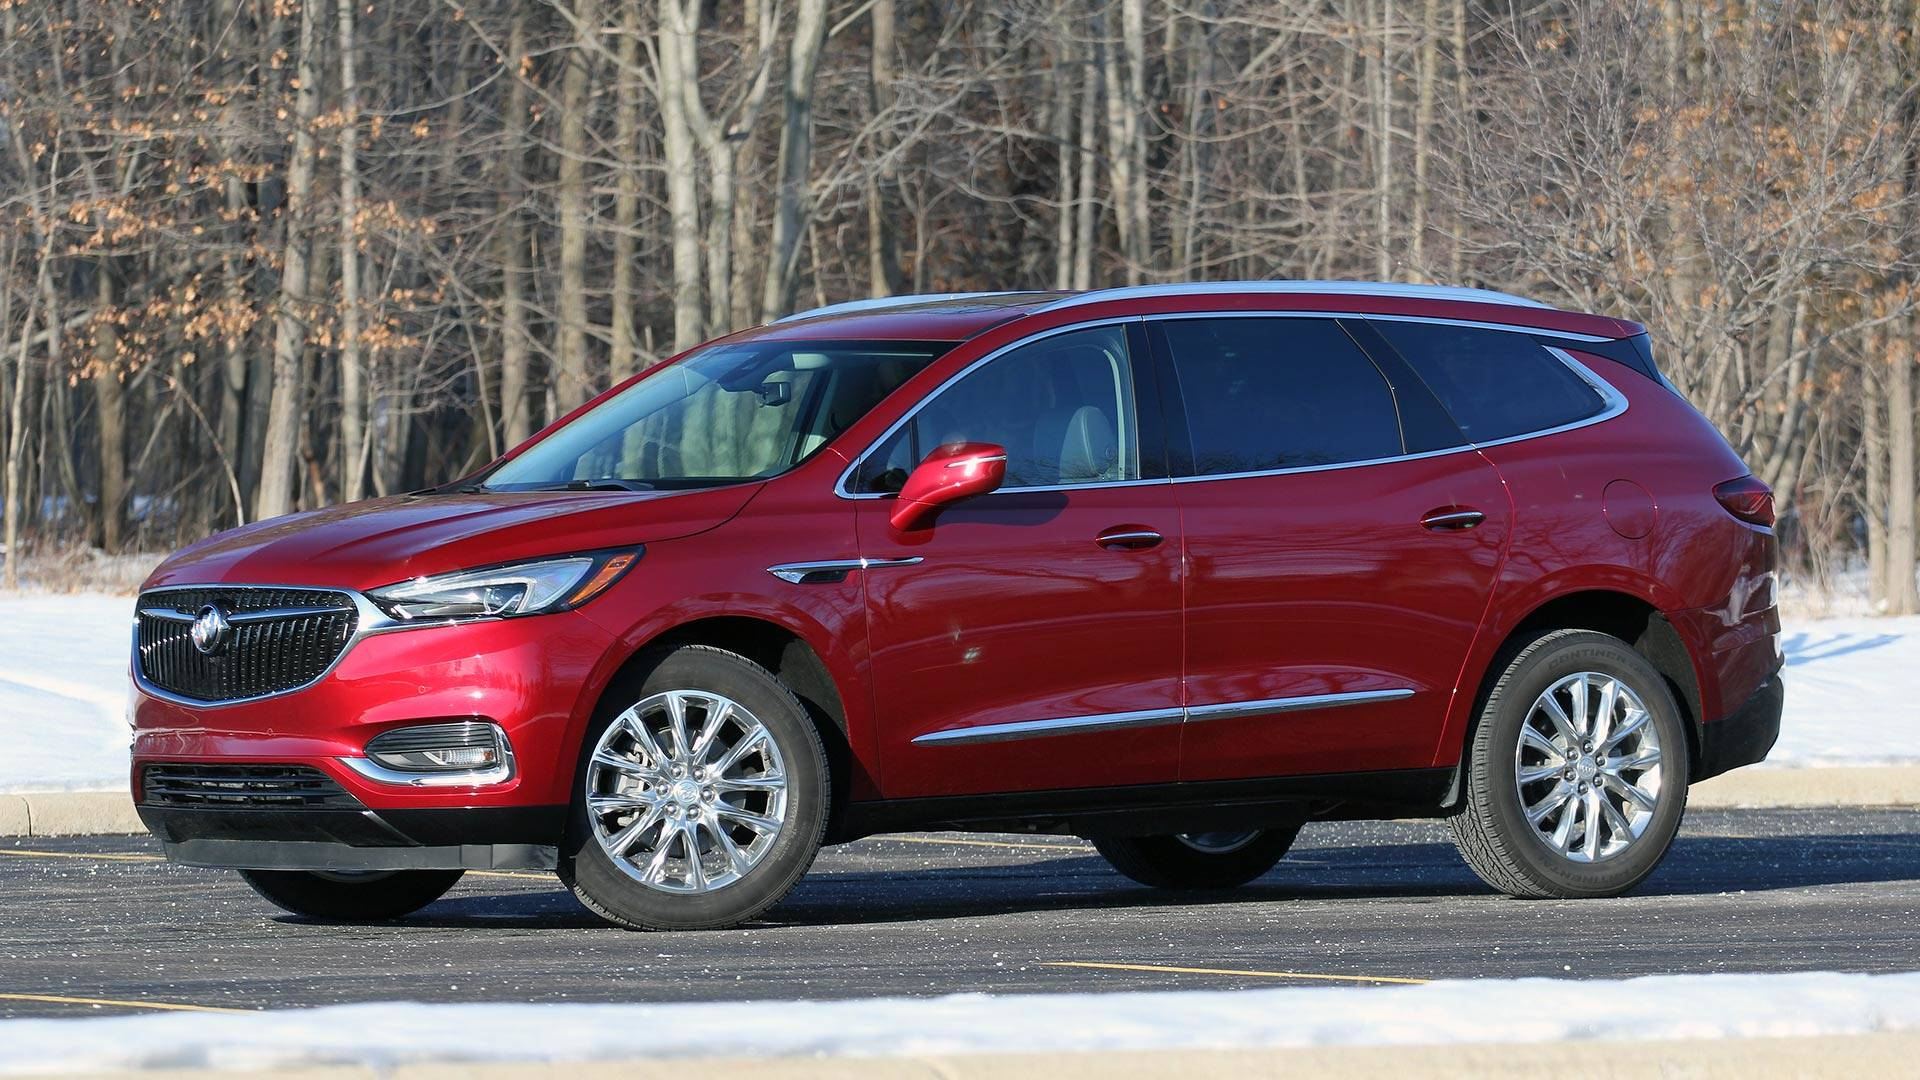 Buick Enclave Seating Capacity >> 2018 Buick Enclave Review Tasteful Luxury